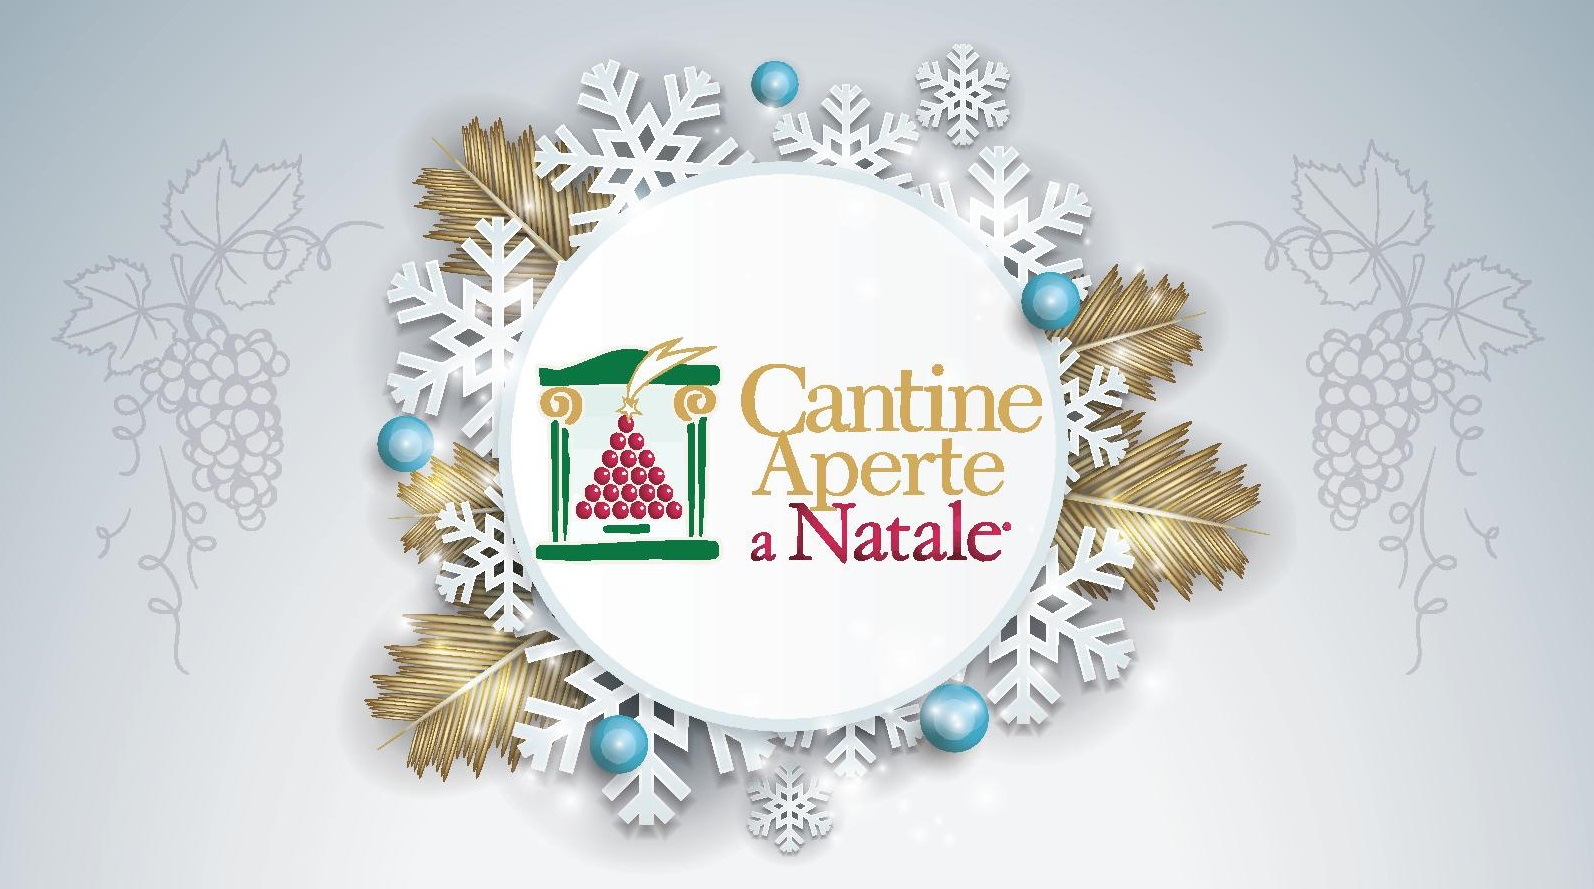 Pagina Cantine Aperte Natale-page-001 ENG